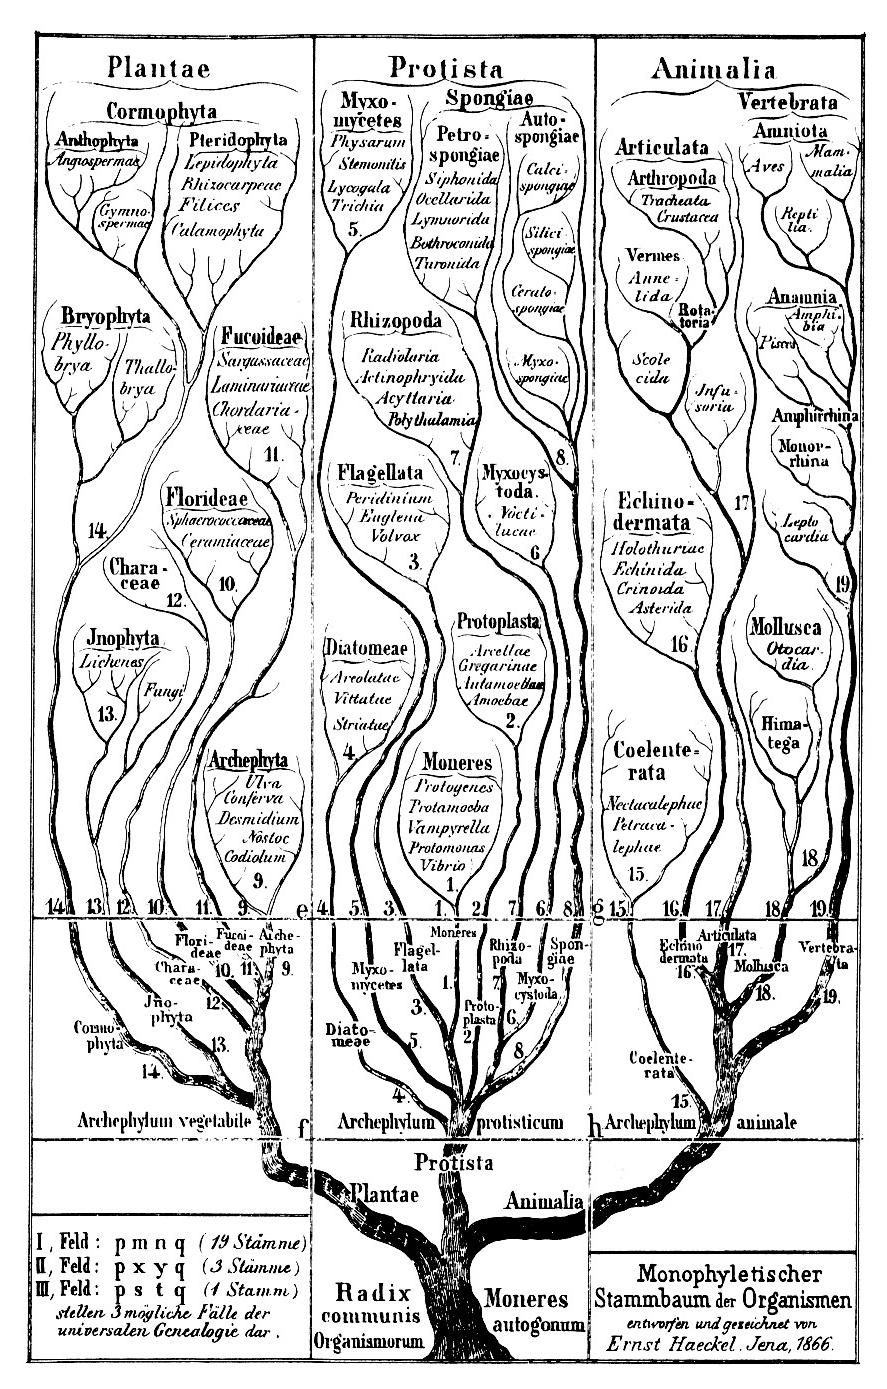 The phylogeny and classification